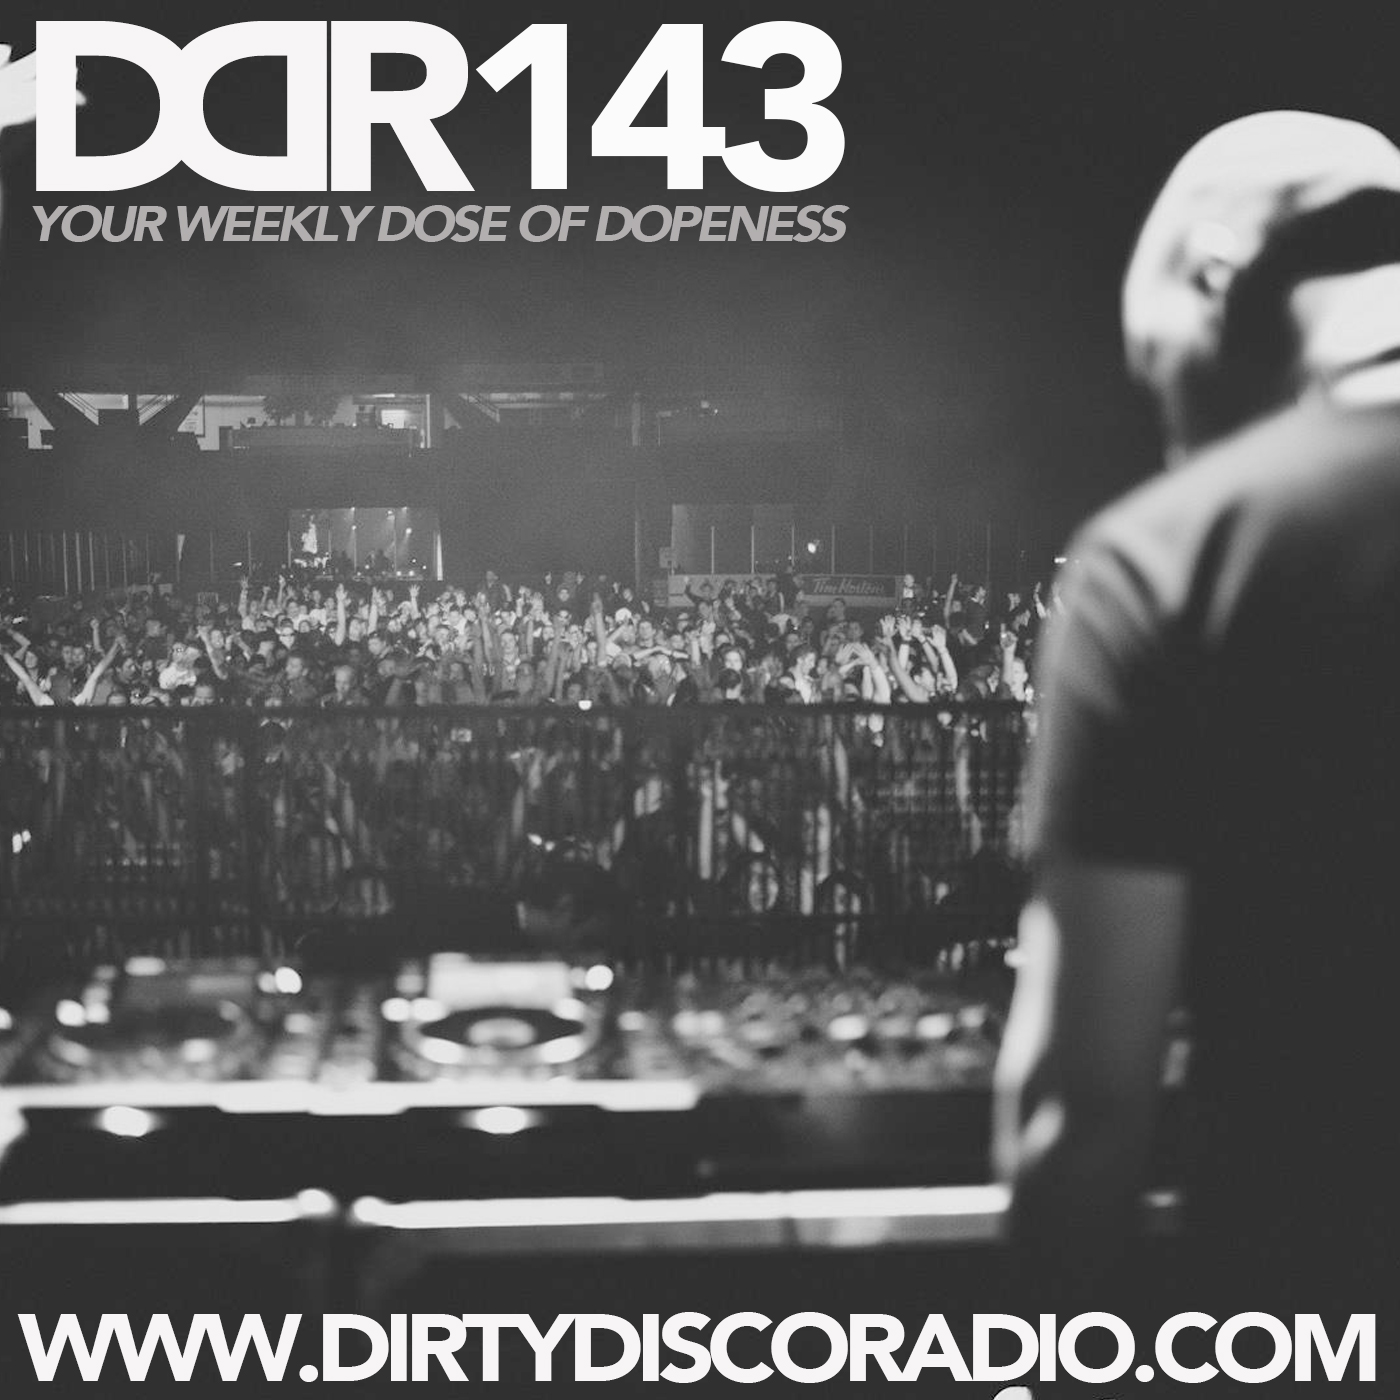 Dirty Disco Radio 143